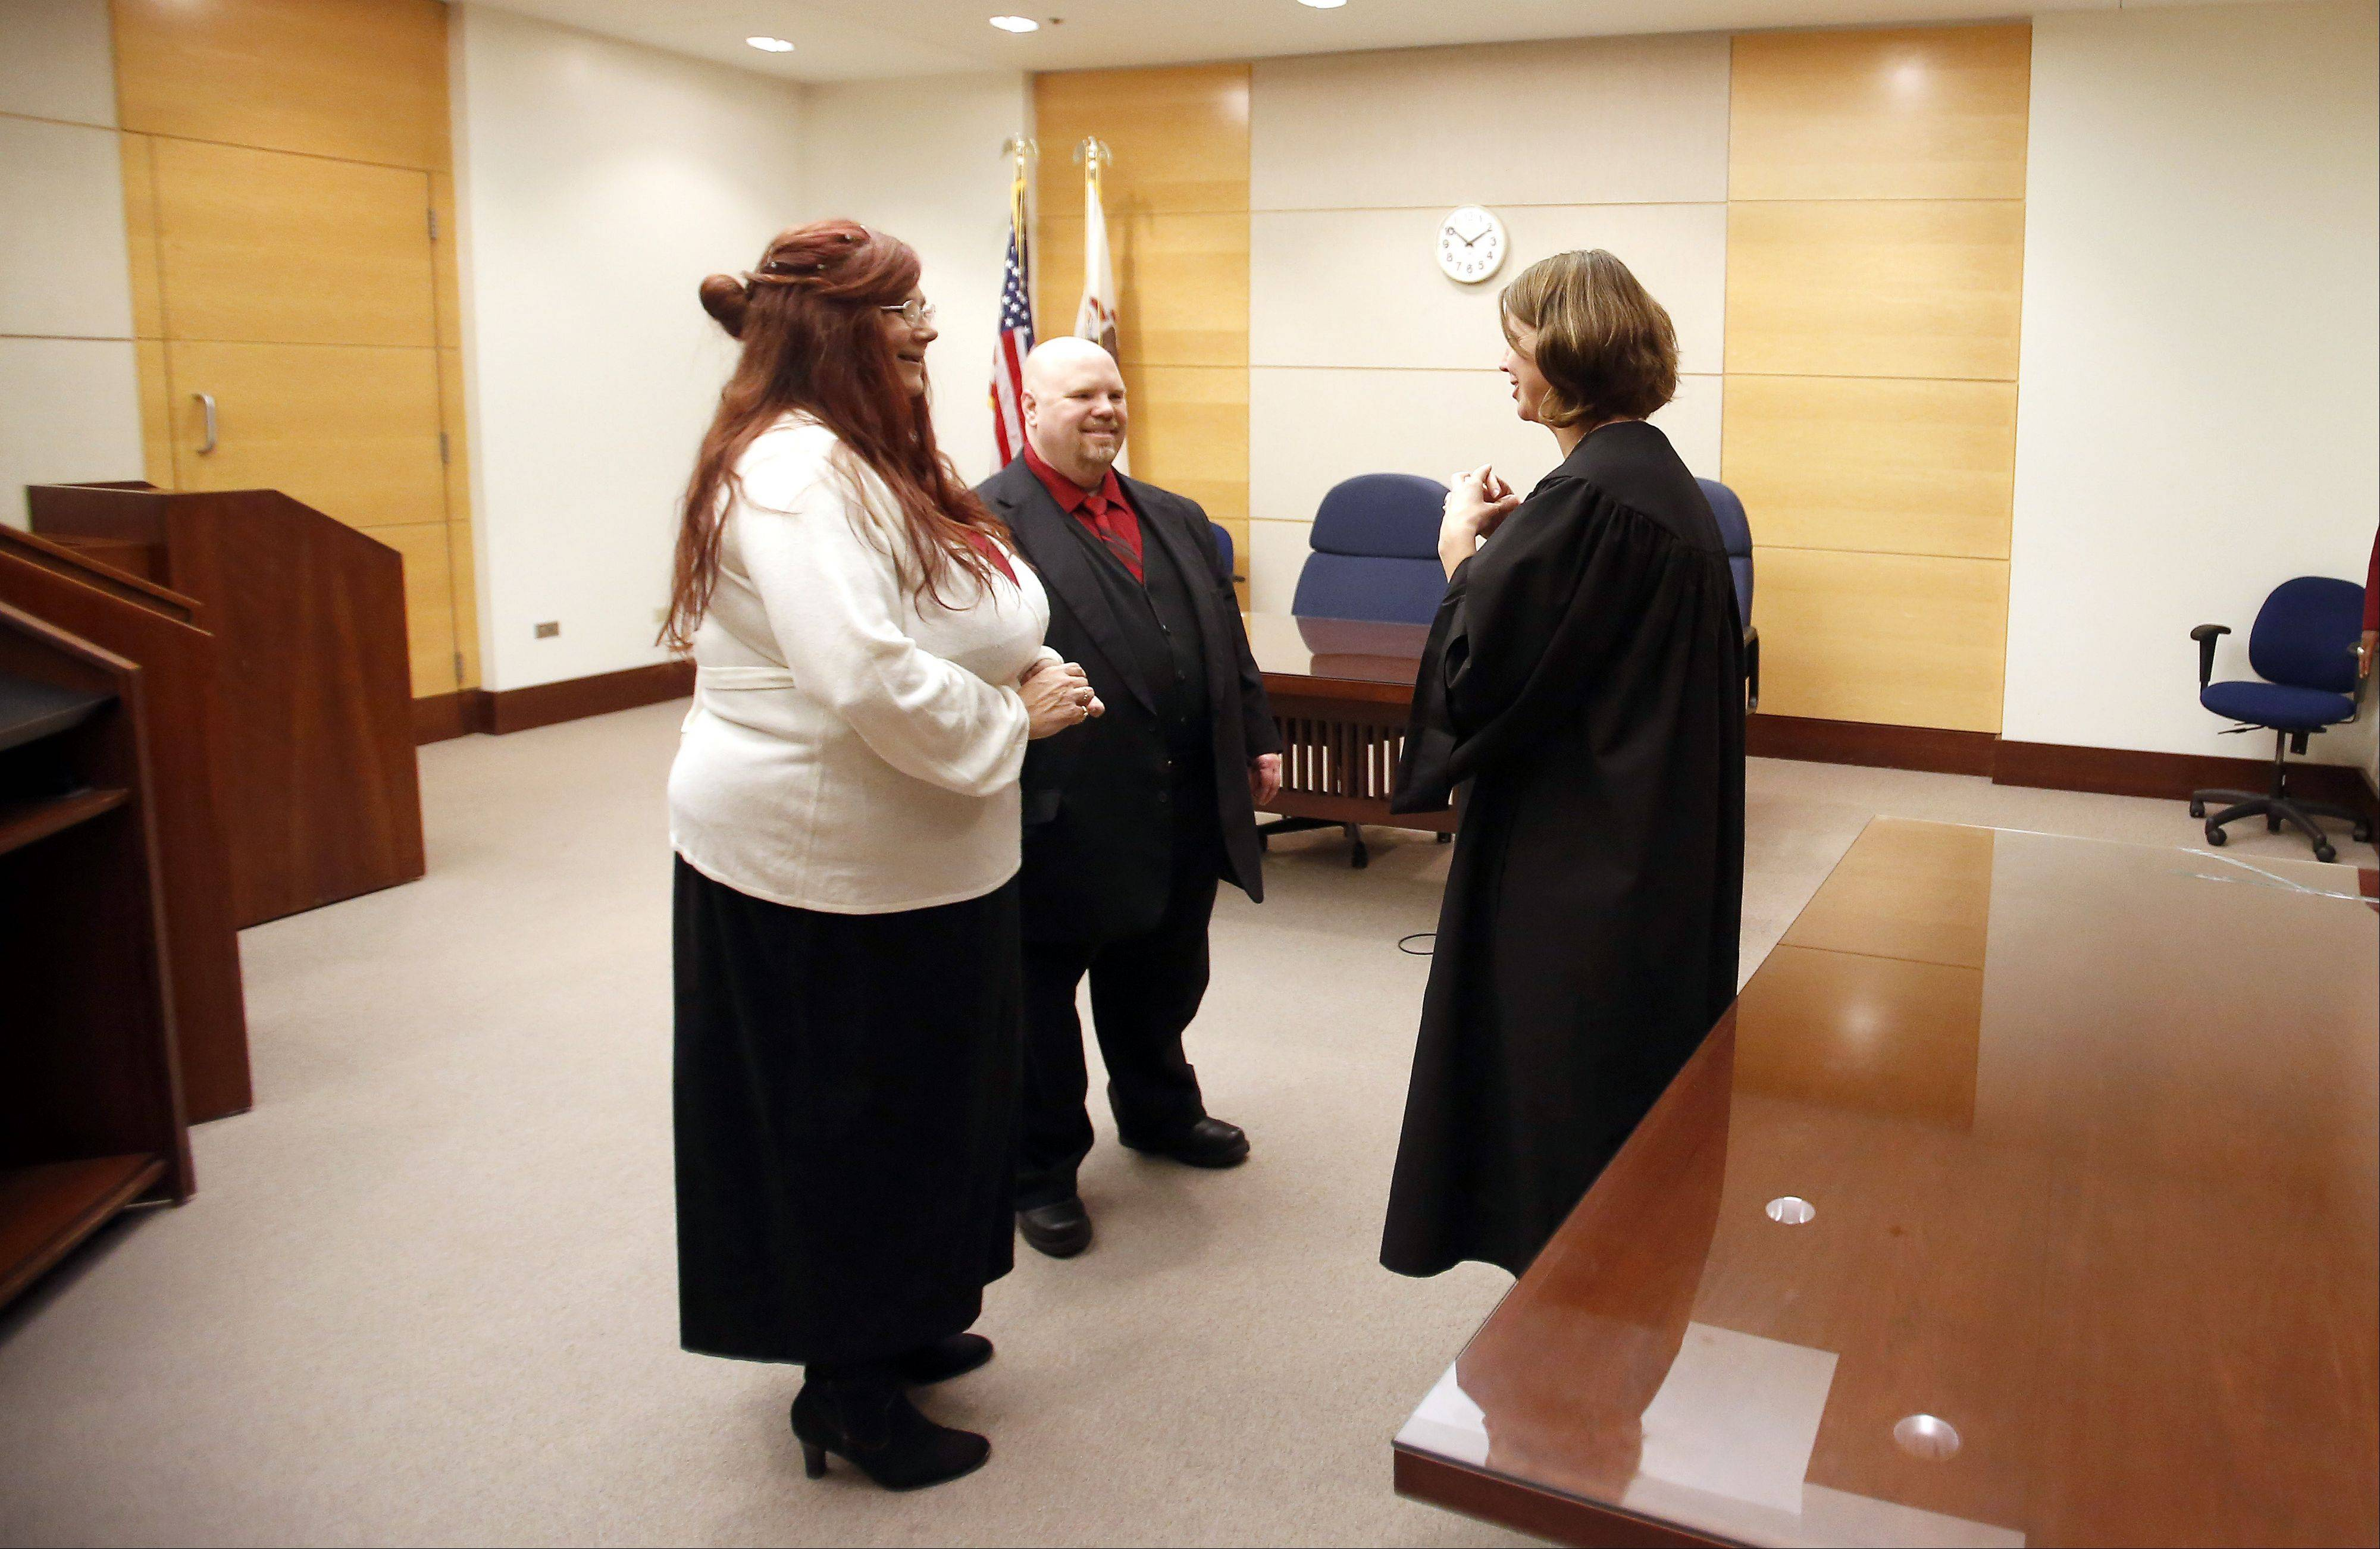 Judge Christine Downs performs the ceremony for Robert and Vanessa Szumal of Naperville, who were married at the Kane County Courthouse Tuesday, 11-12-13, in St. Charles.